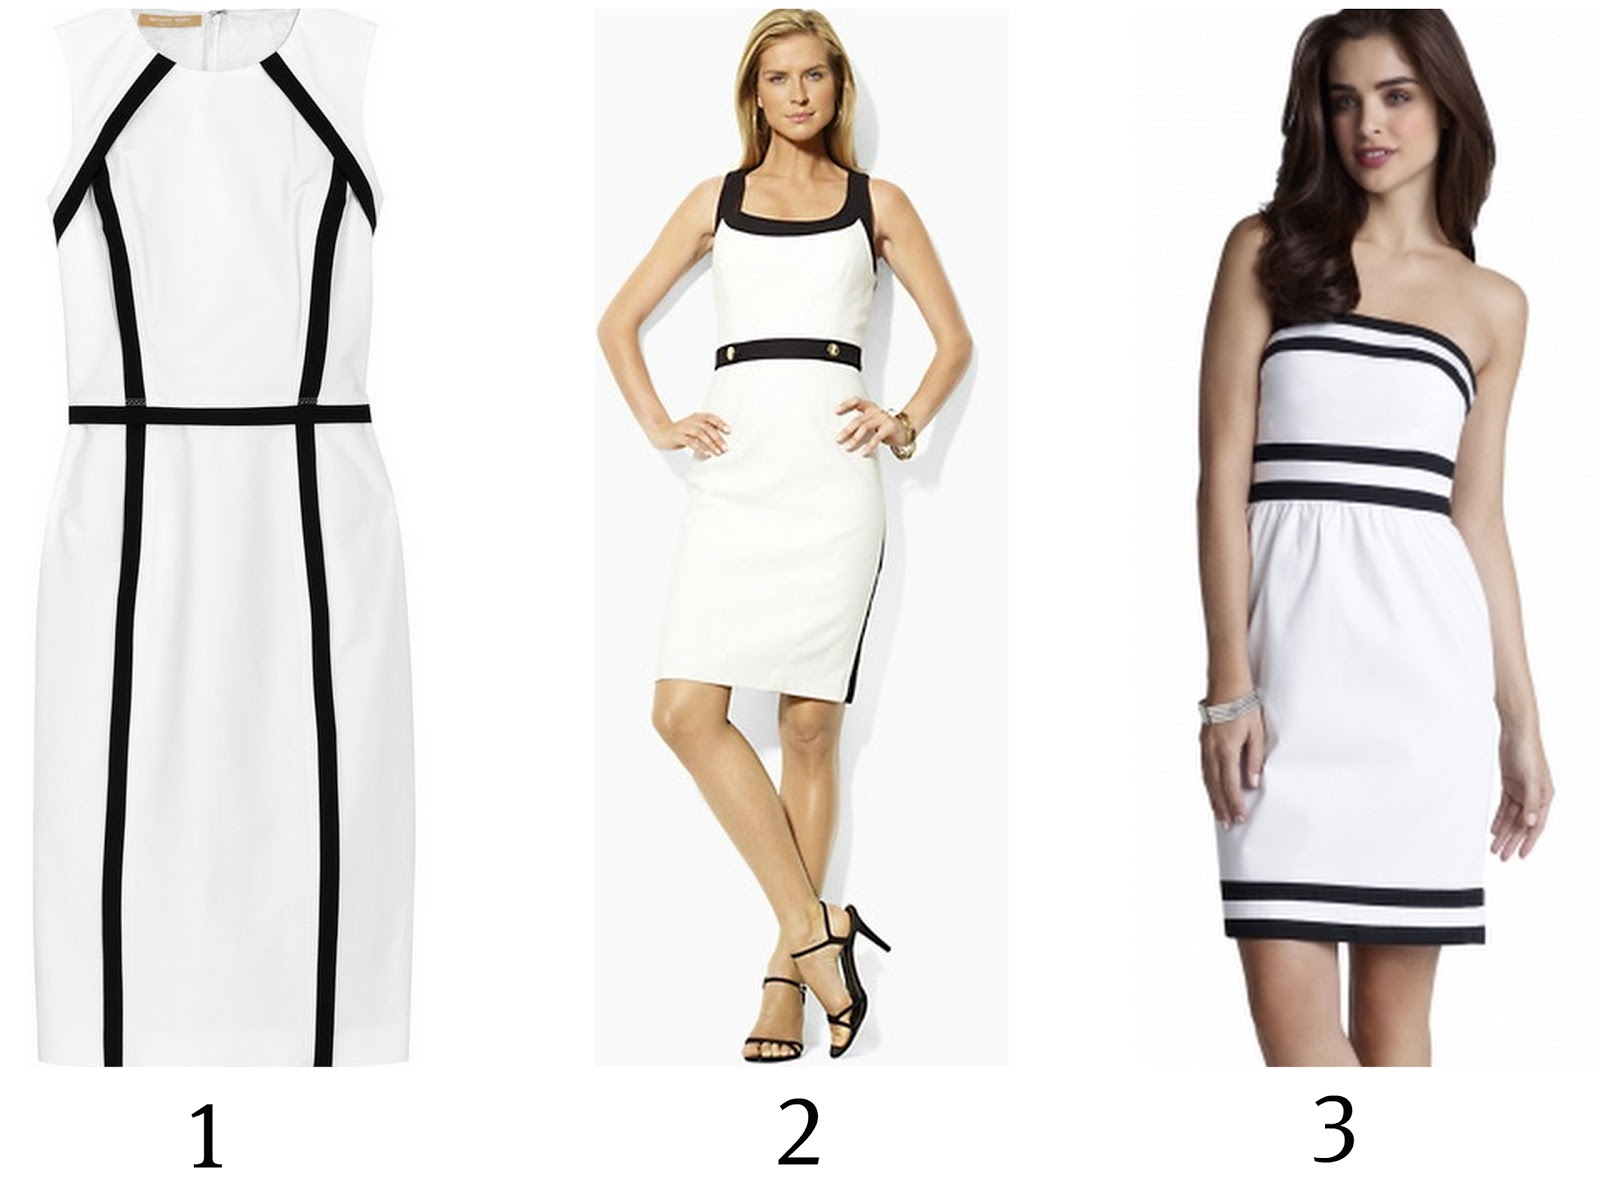 Michael Kors White Dress Splurge And Steal